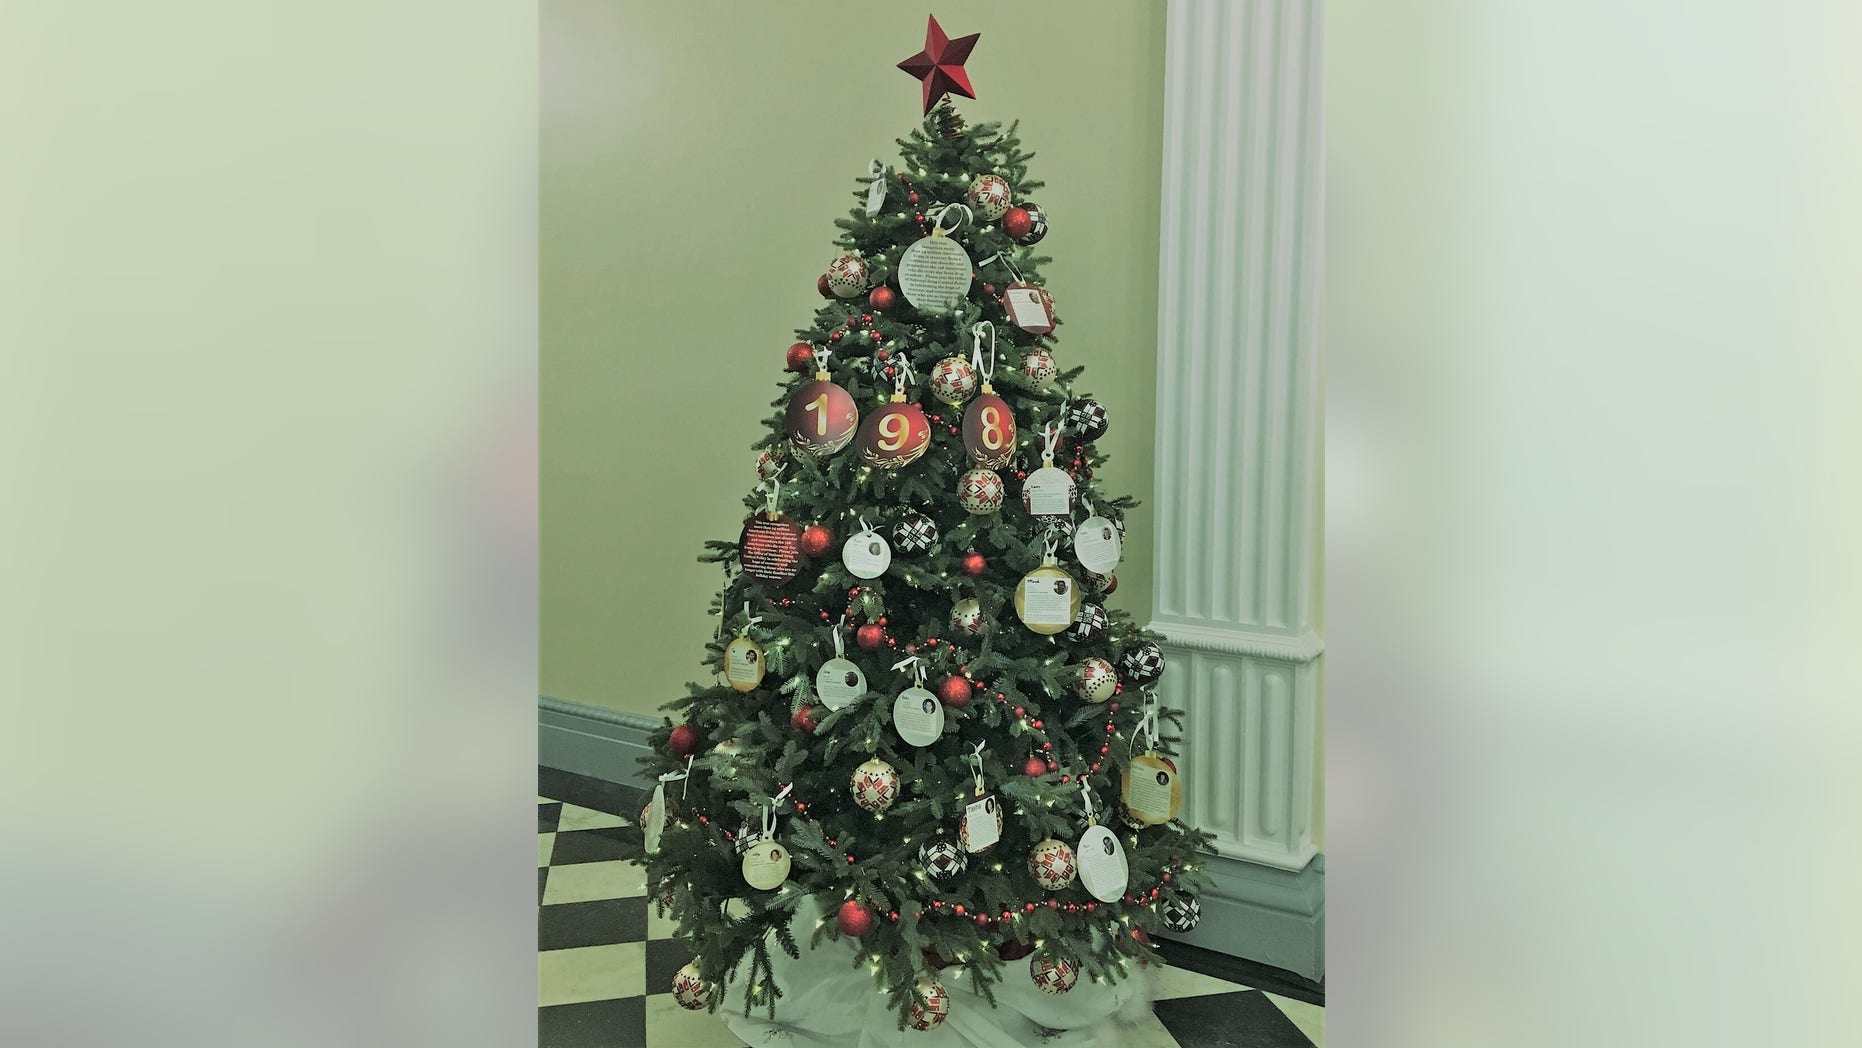 The White House Recovery and Remembrance Tree in the Eisenhower Executive Office Building, Christmas 2018 in Washington, D.C.